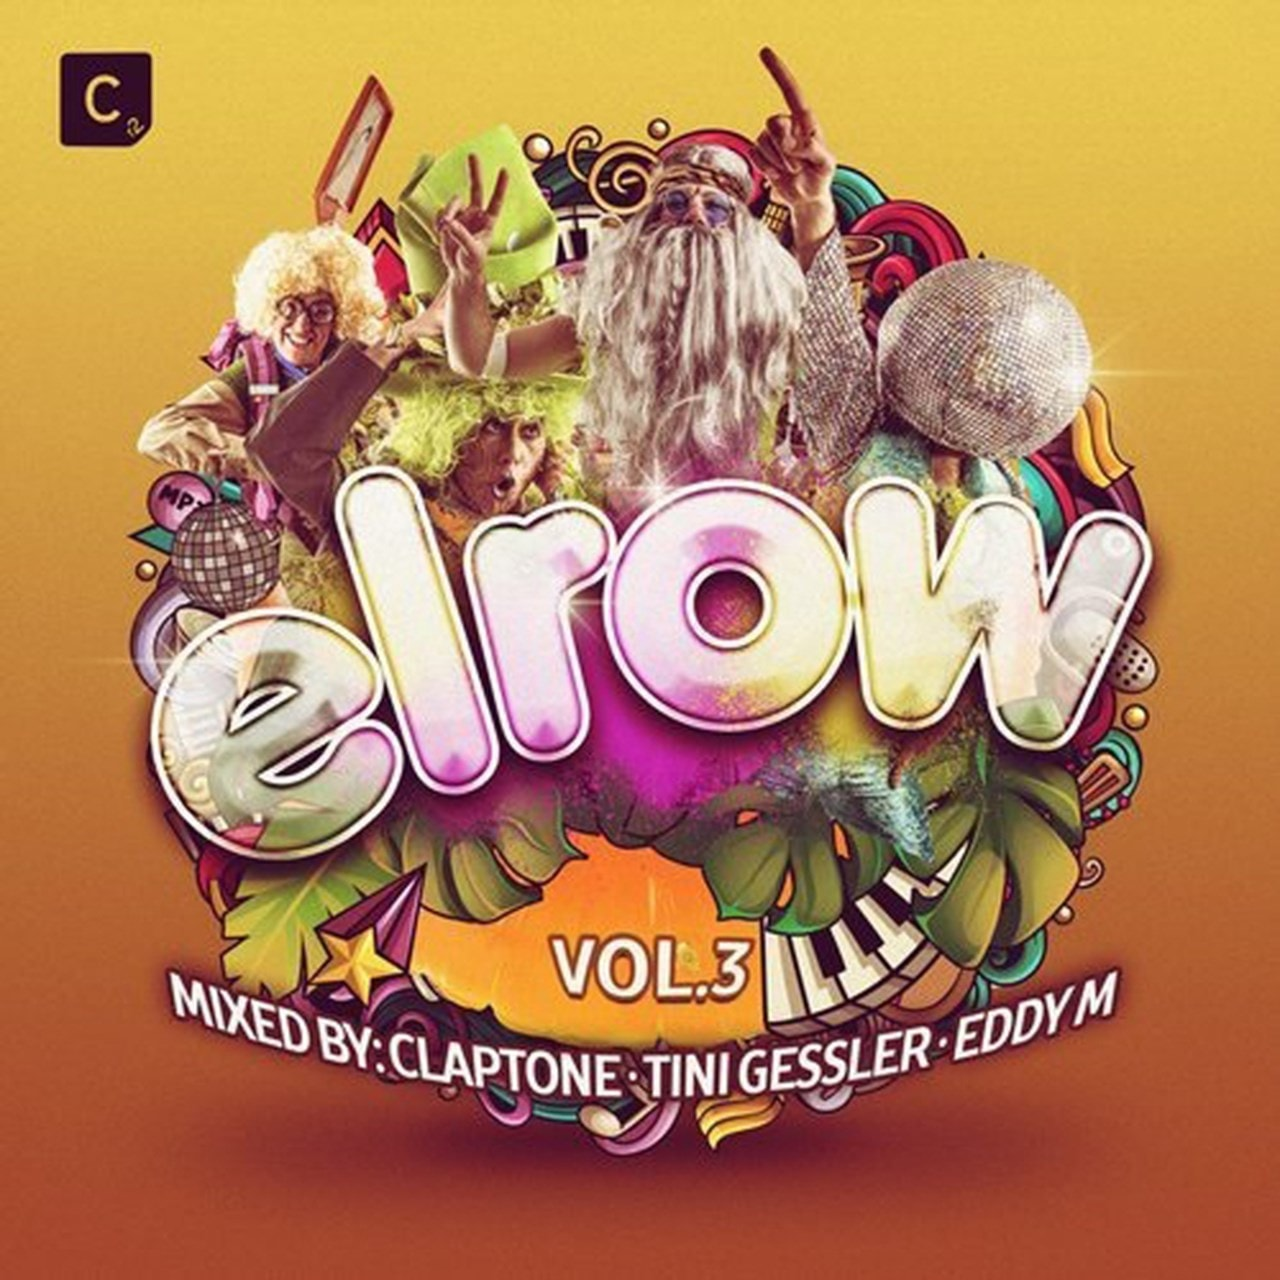 Elrow: Mixed By Claptone, Tini Gessler & Eddy M - Volume 3 - 2